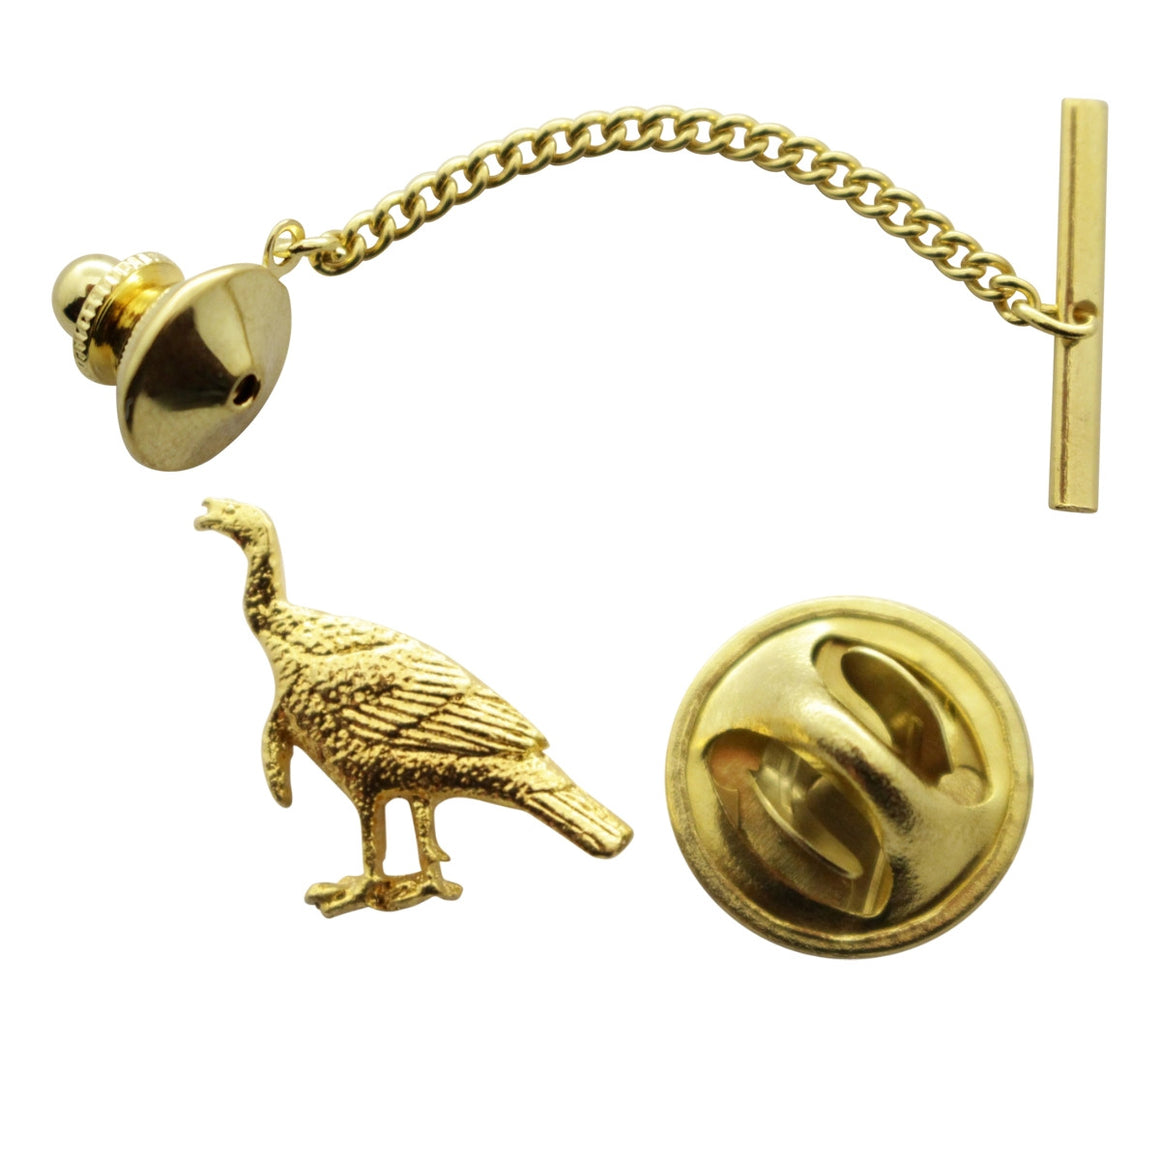 Alert Turkey Tie Tack ~ 24K Gold ~ Tie Tack or Pin ~ 24K Gold Tie Tack or Pin ~ Sarah's Treats & Treasures